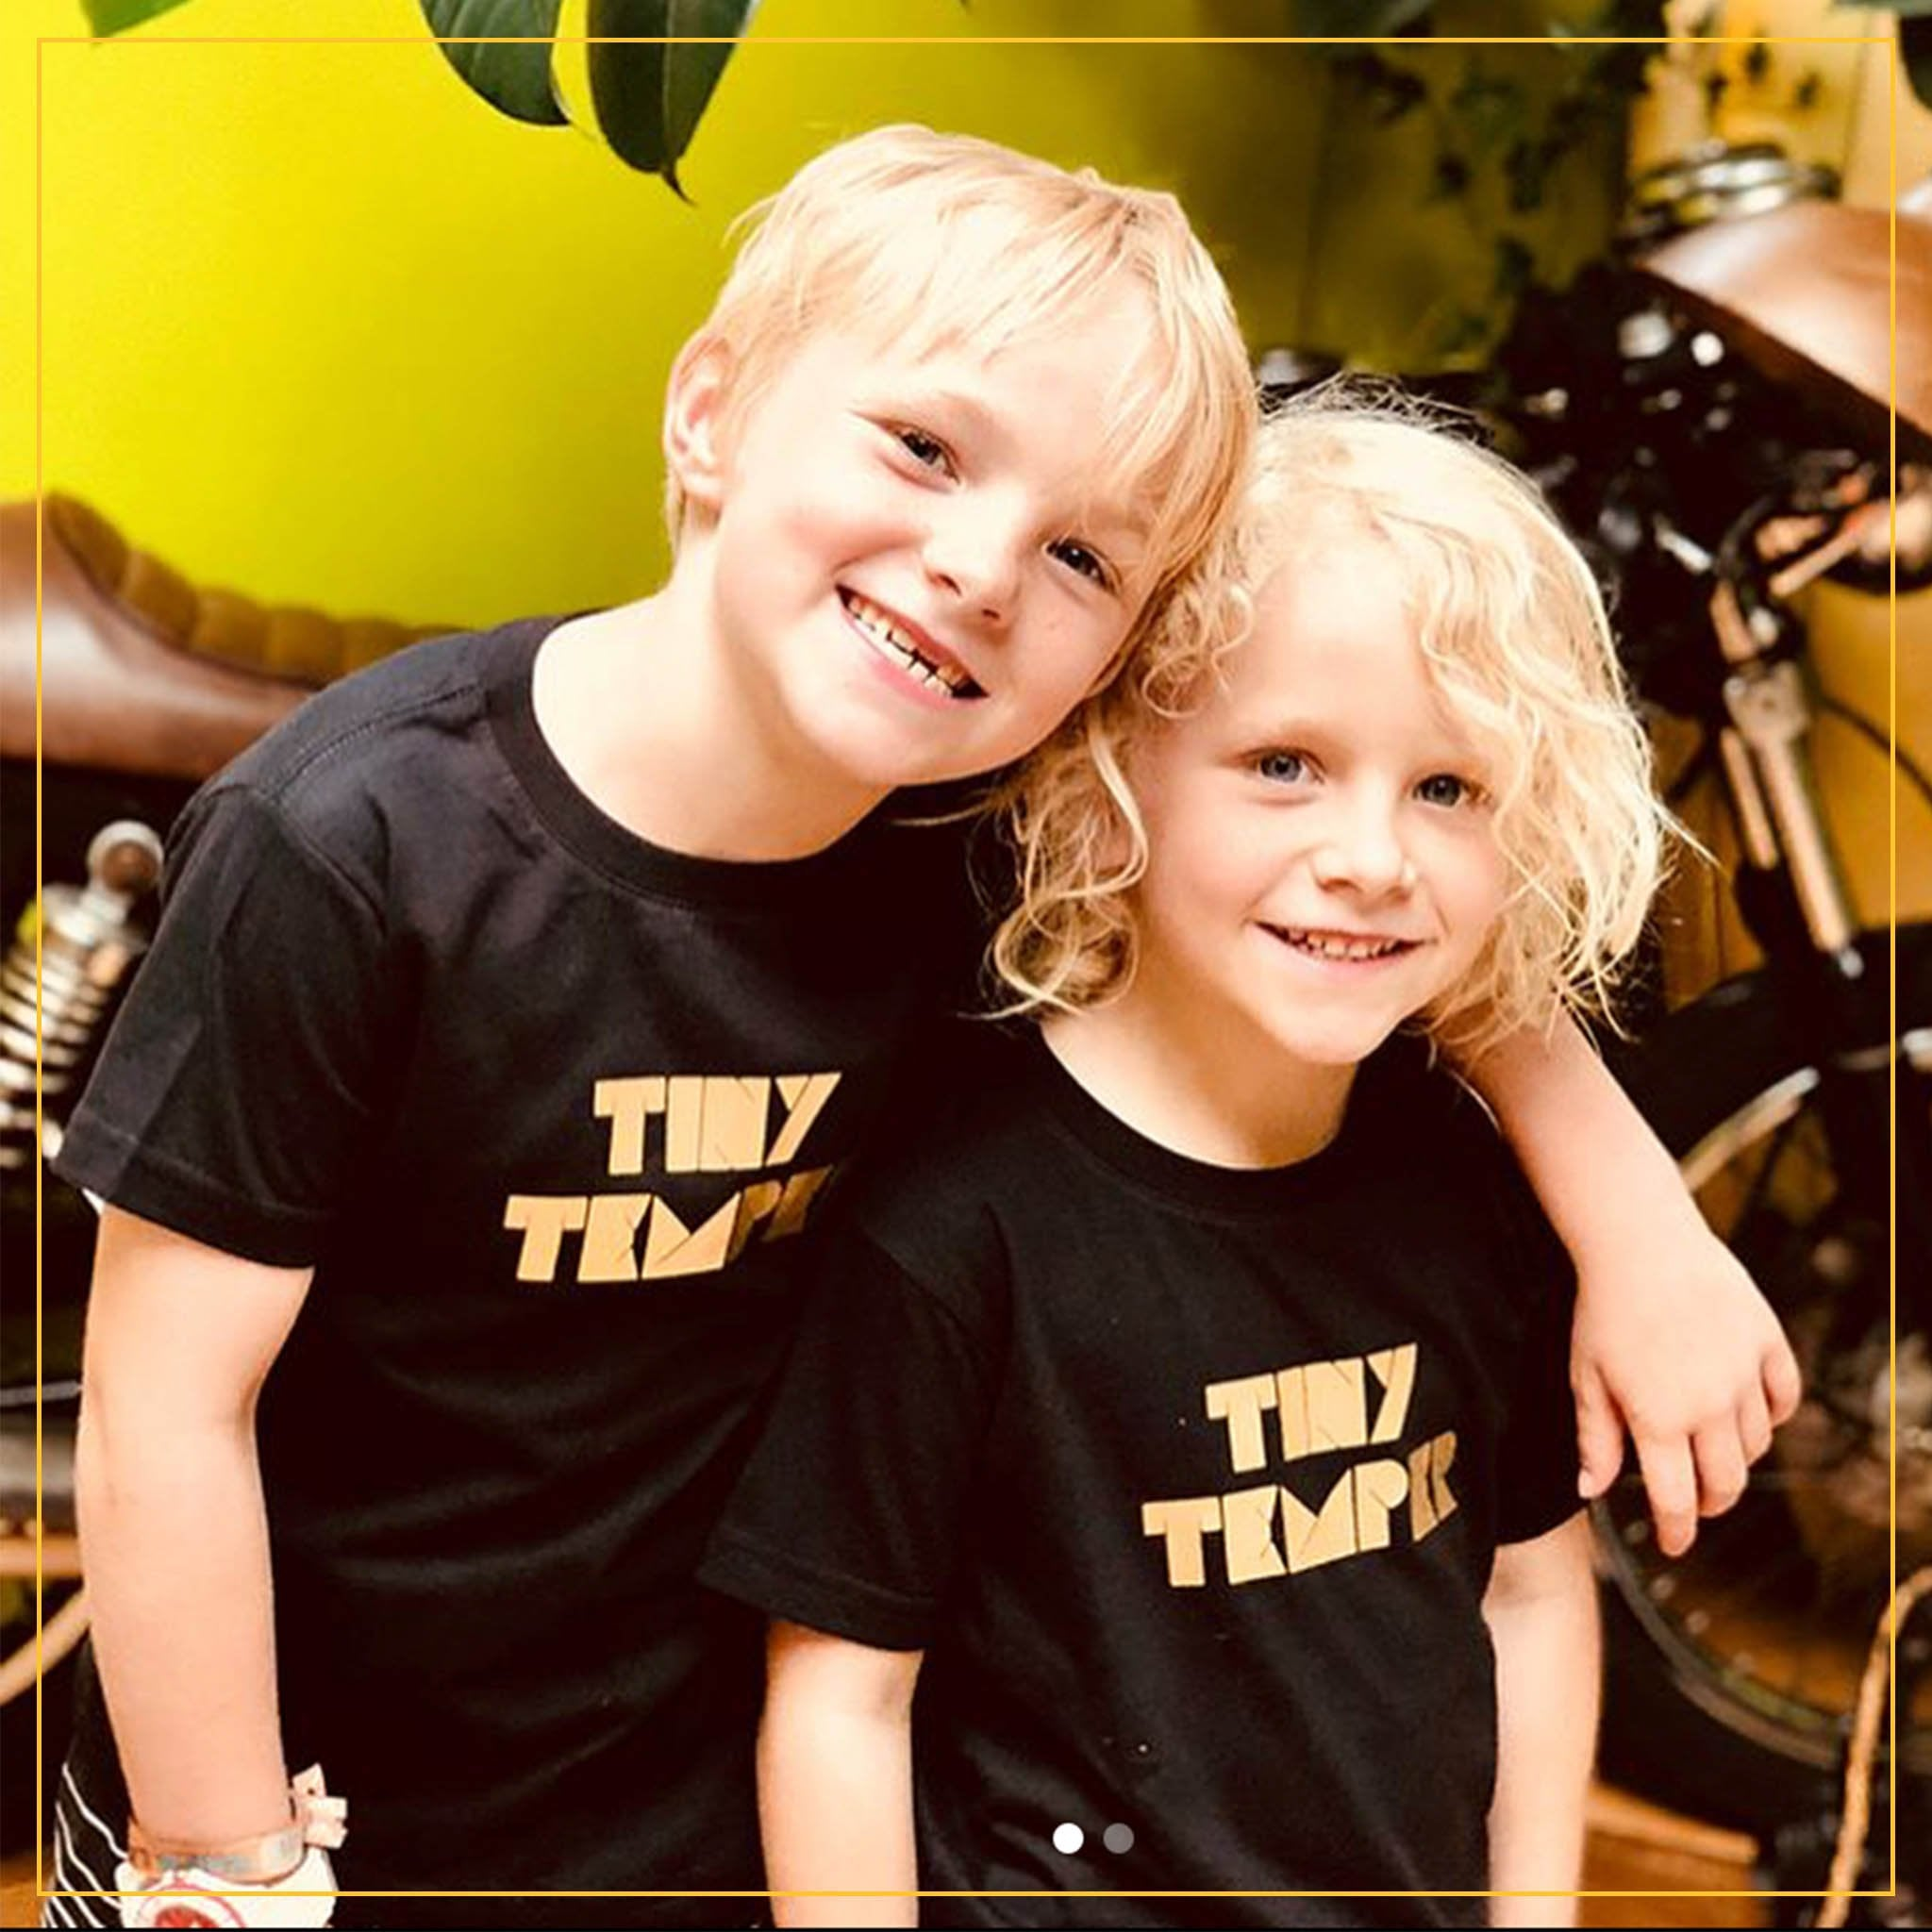 boy and girls wearing black novelty tees with 'tiny temper' print